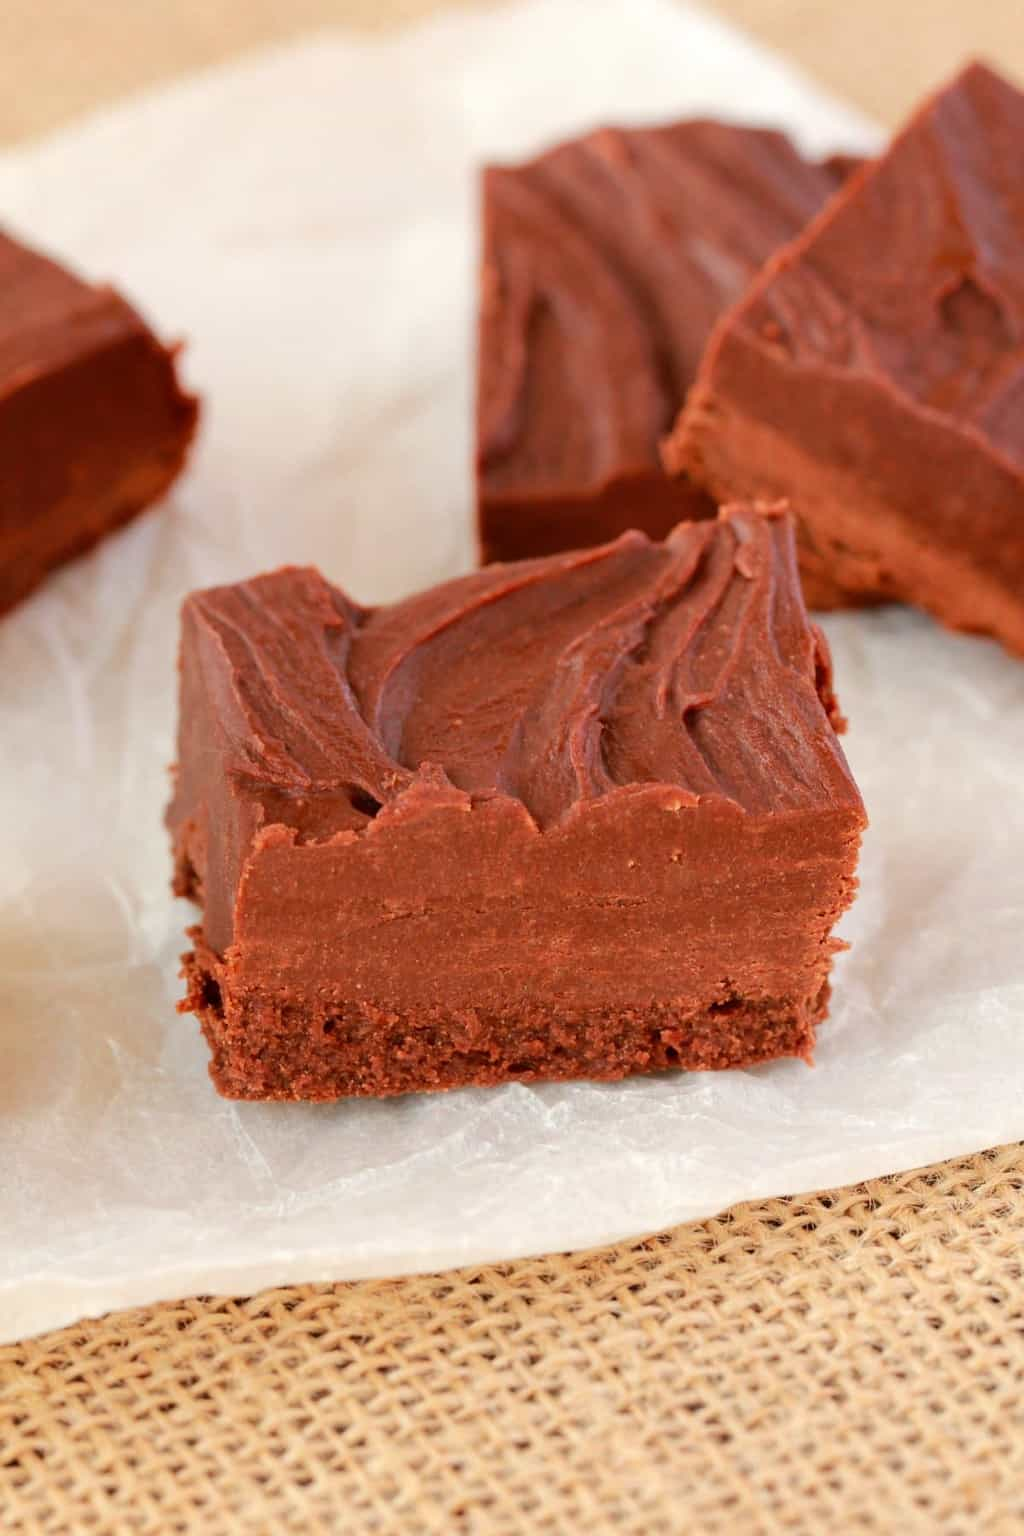 Microwave chocolate fudge on parchment paper.